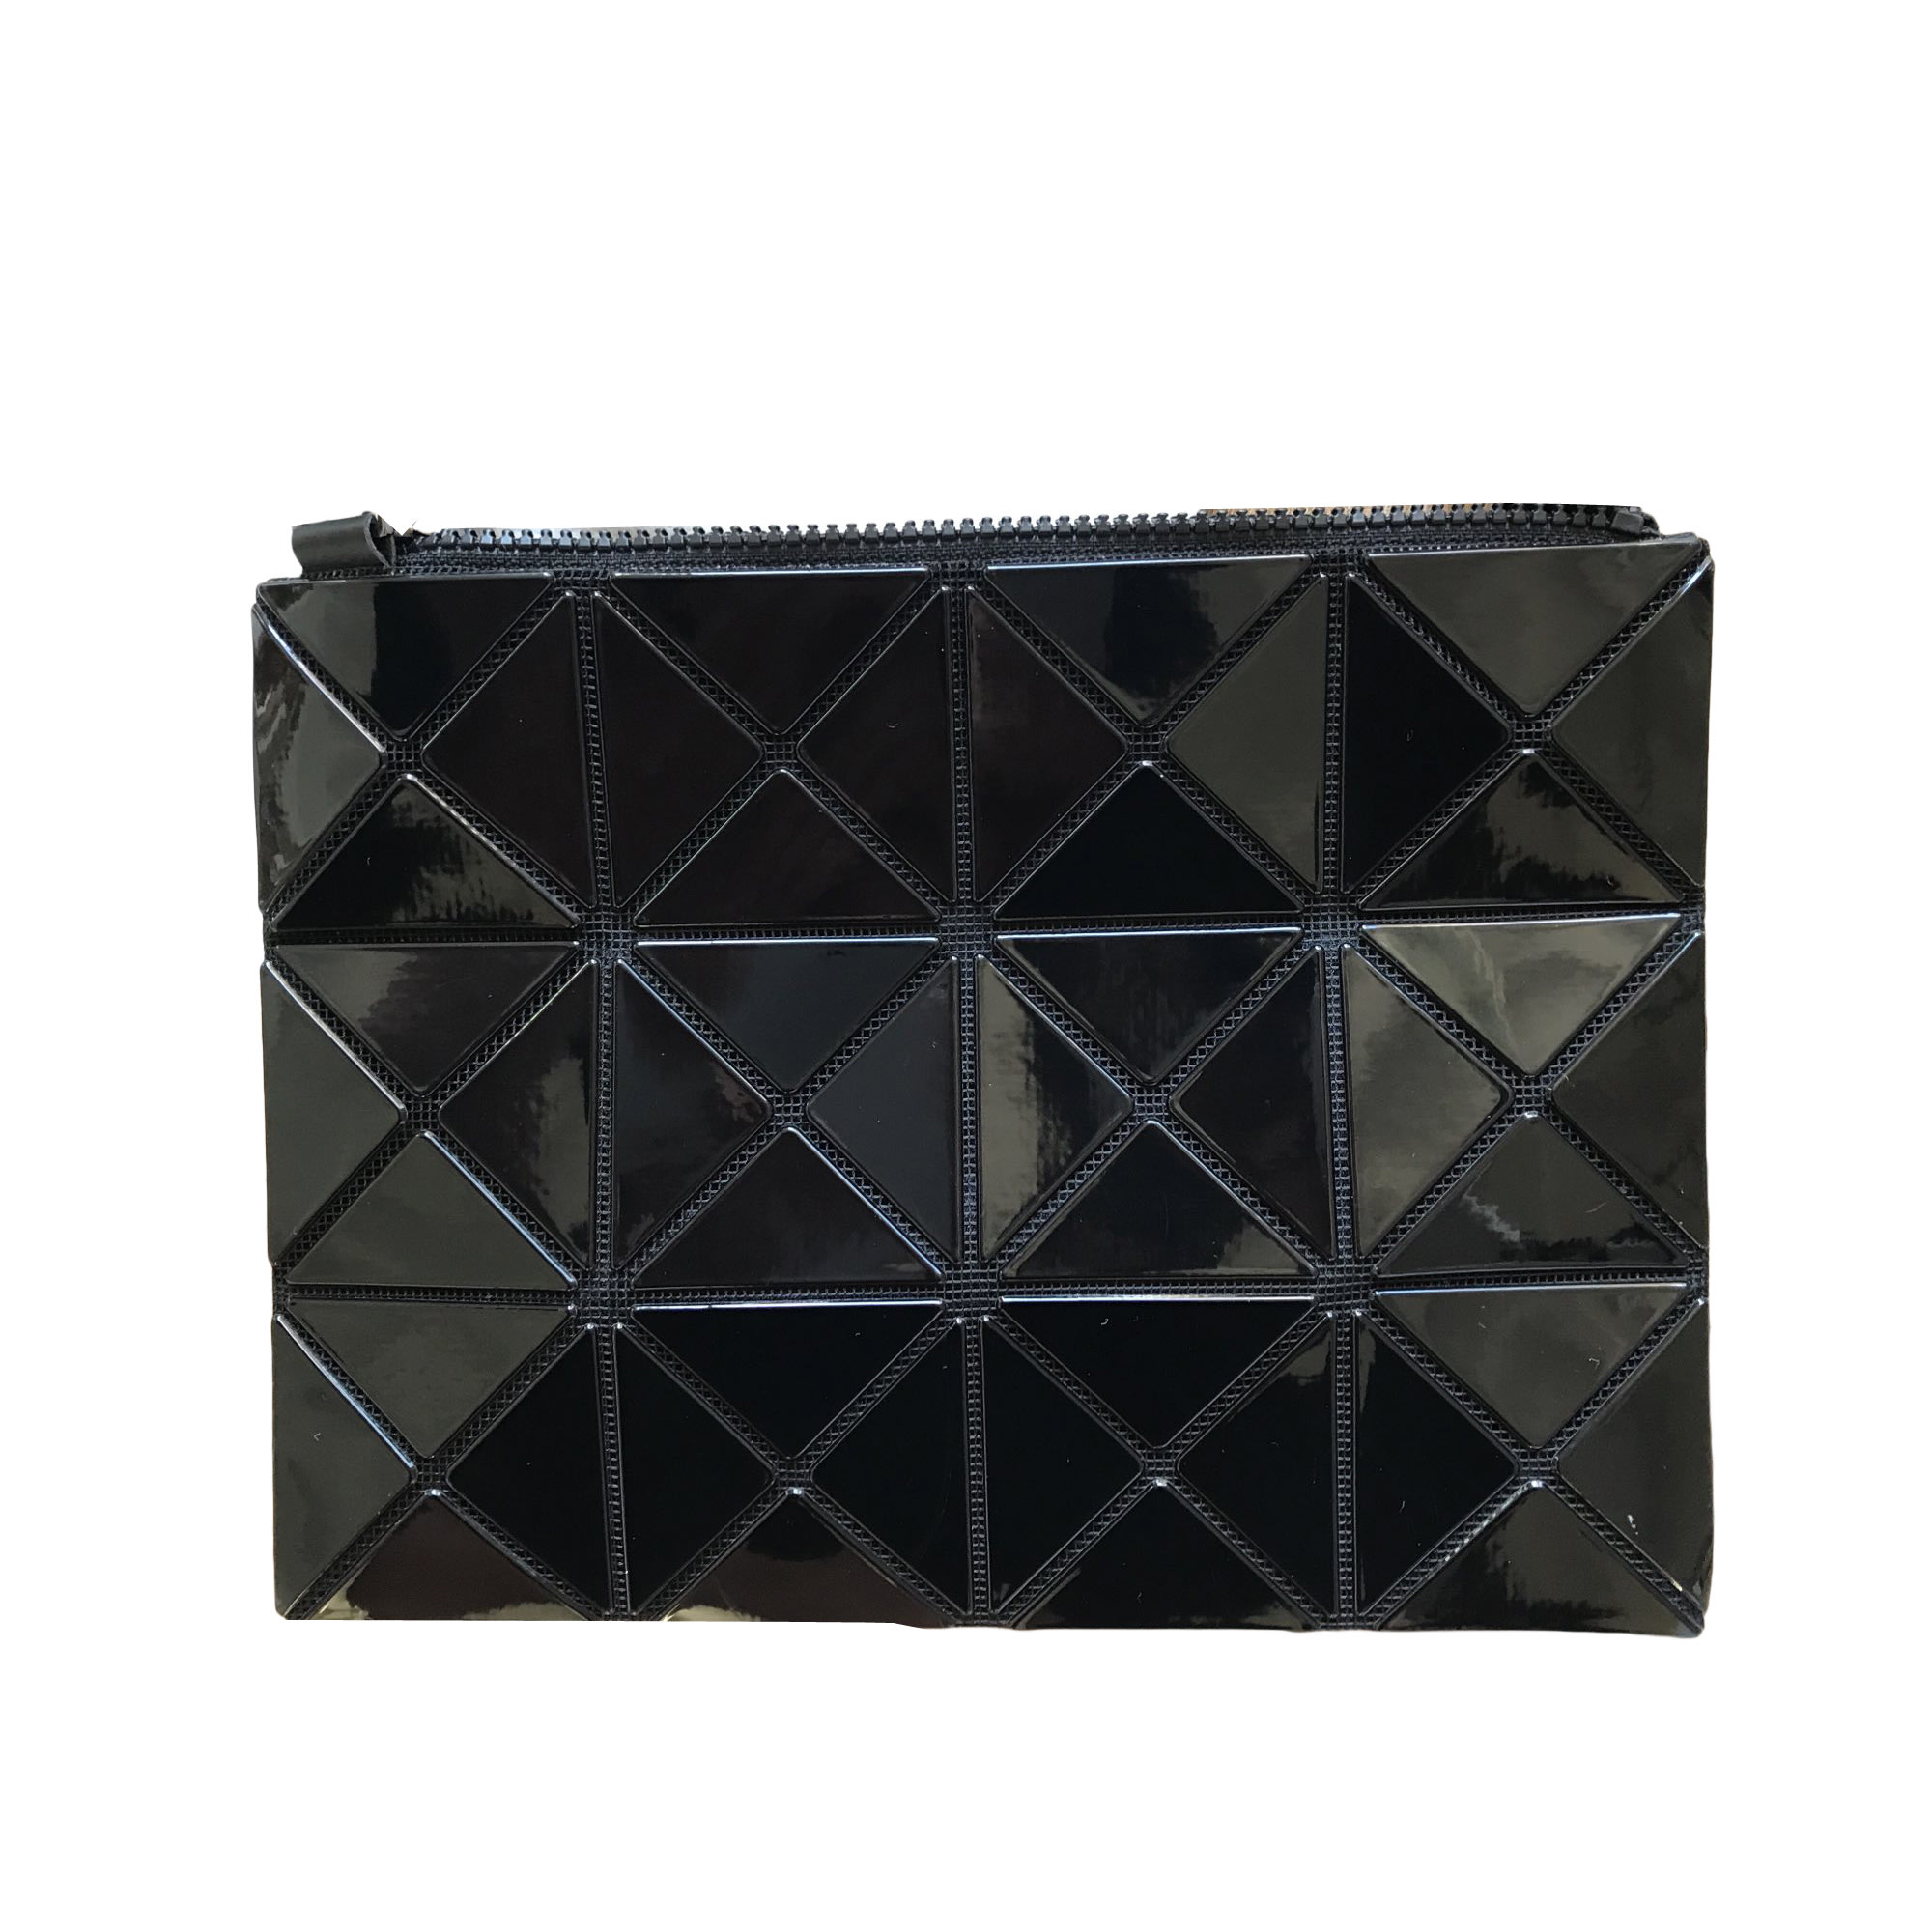 Non-Leather Shoulder Bag PLEATS PLEASE Black